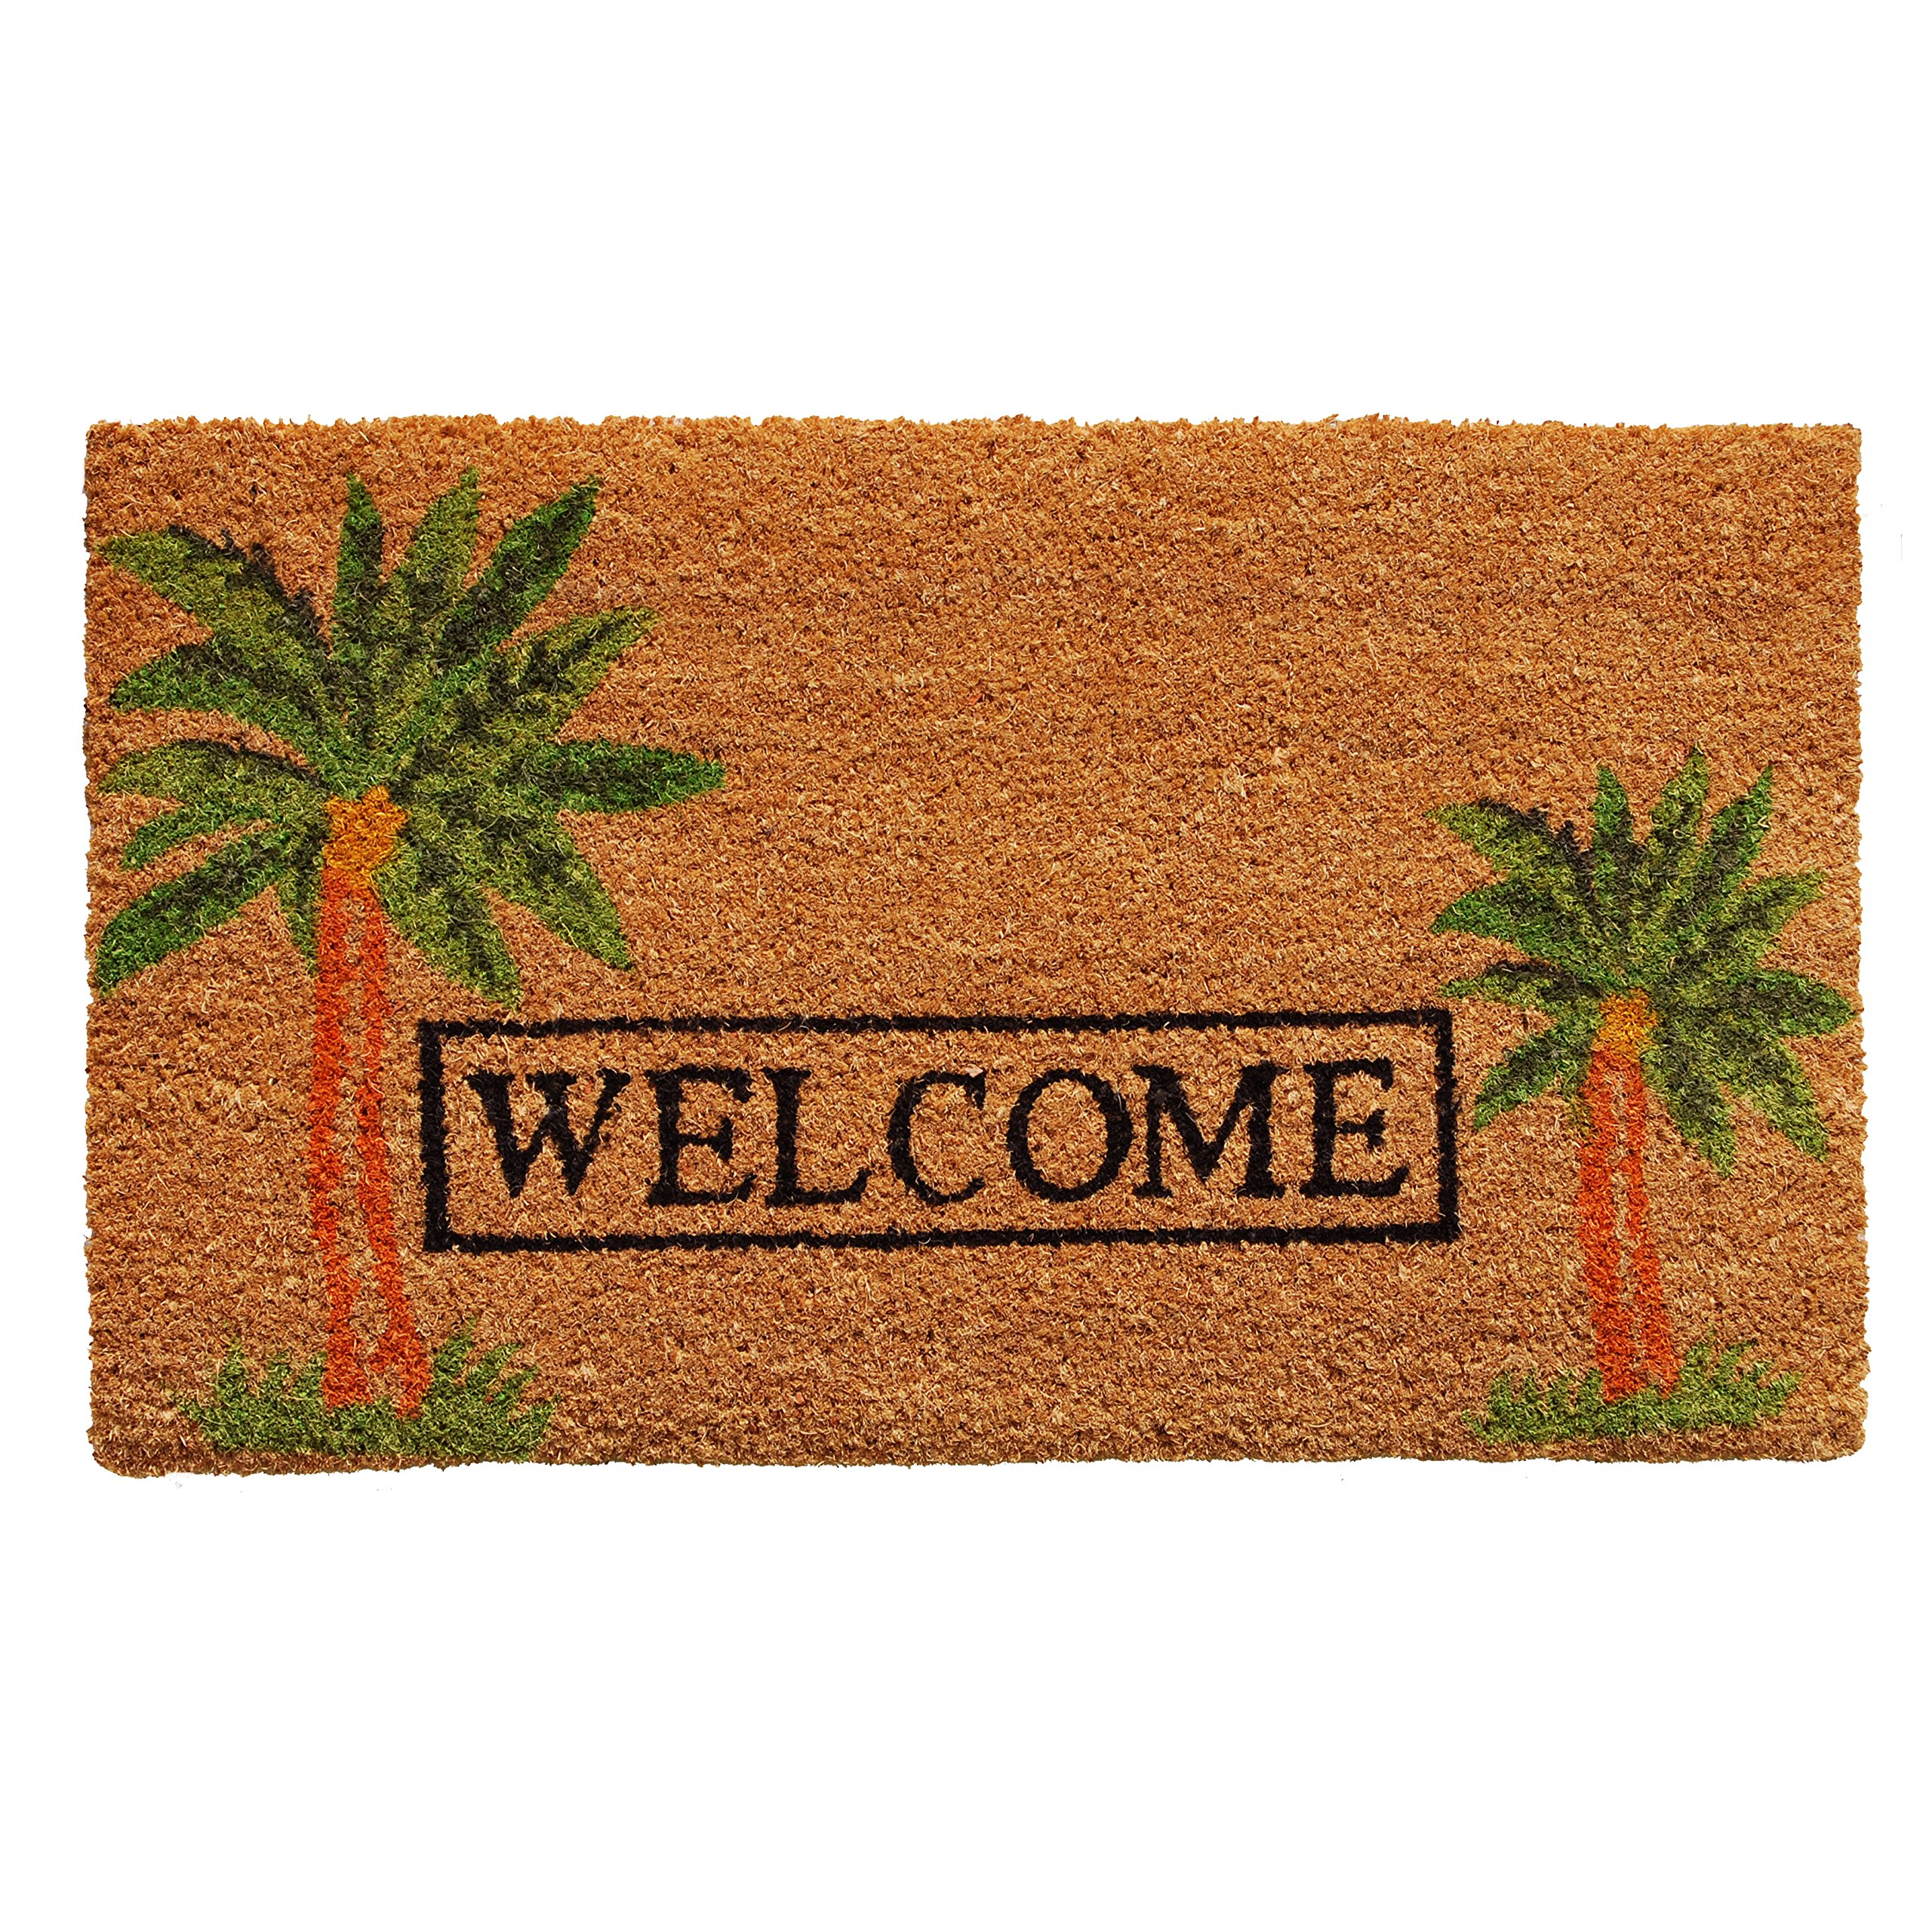 Home & More 120521729 Palm Welcome Doormat, 17'' x 29'' x 0.60'', Multicolor